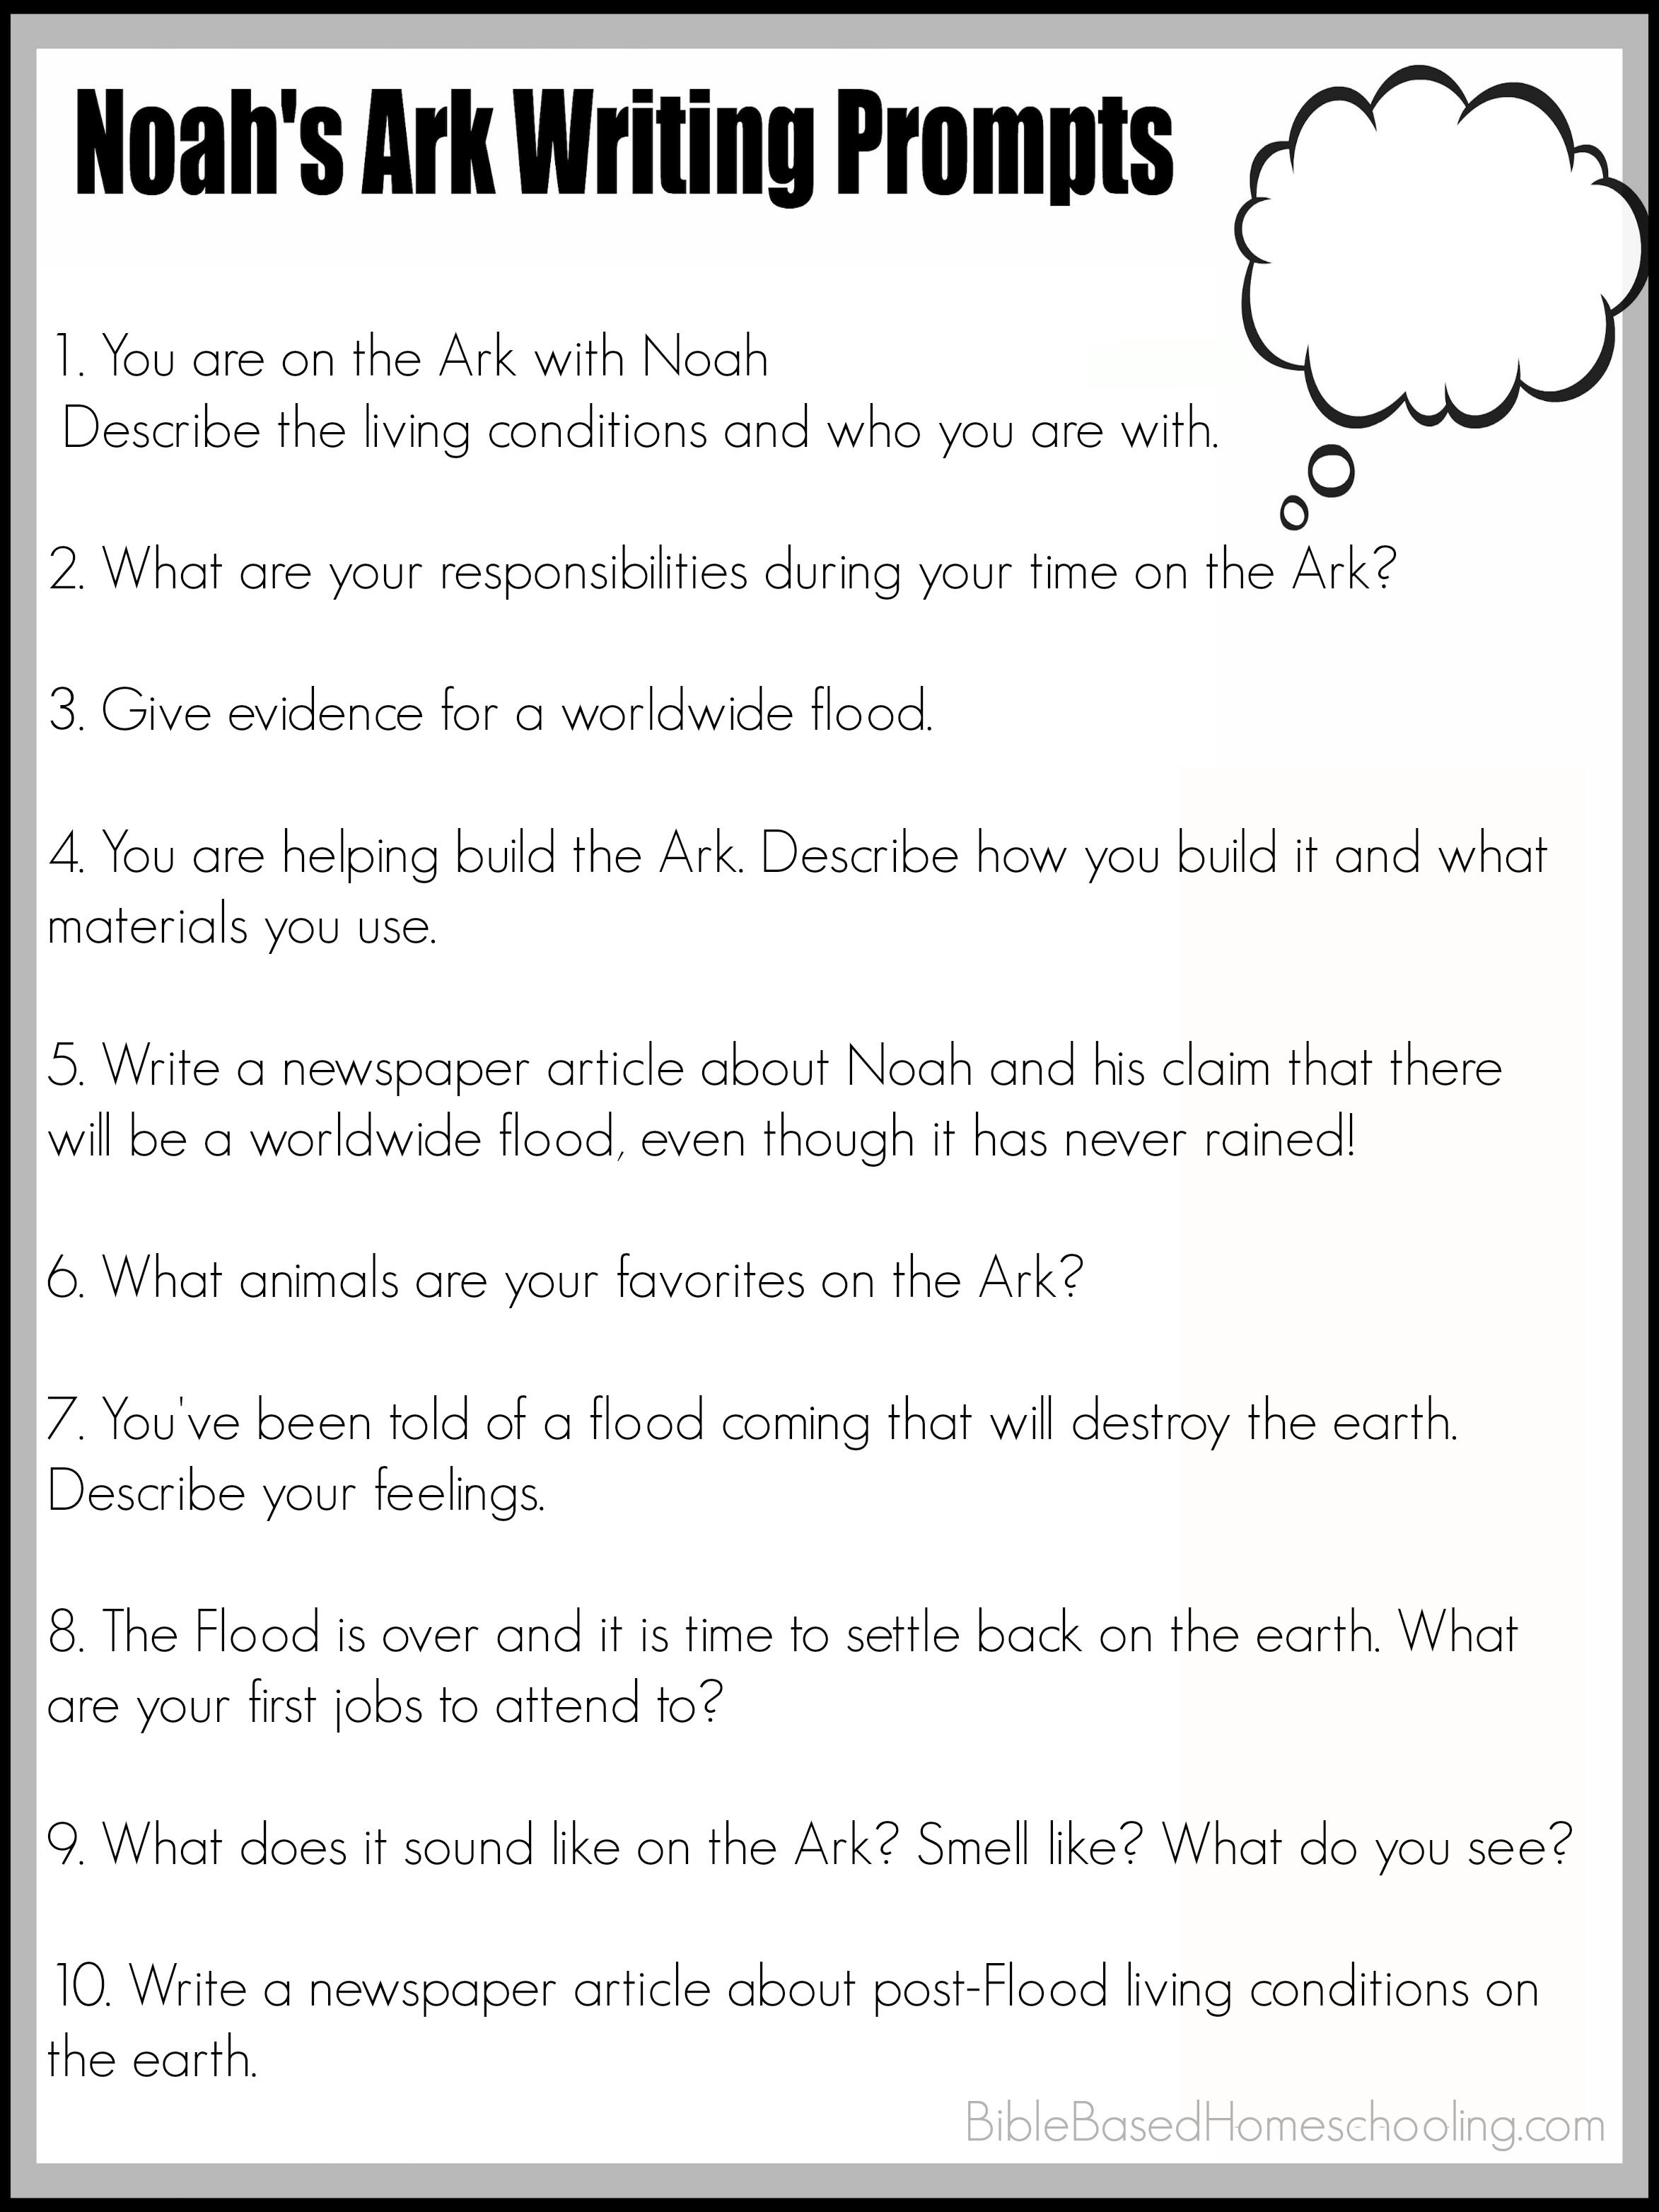 Free Printable Noah's Ark Writing Prompts | Ultimate Homeschool - Free Printable Sunday School Lessons For Youth